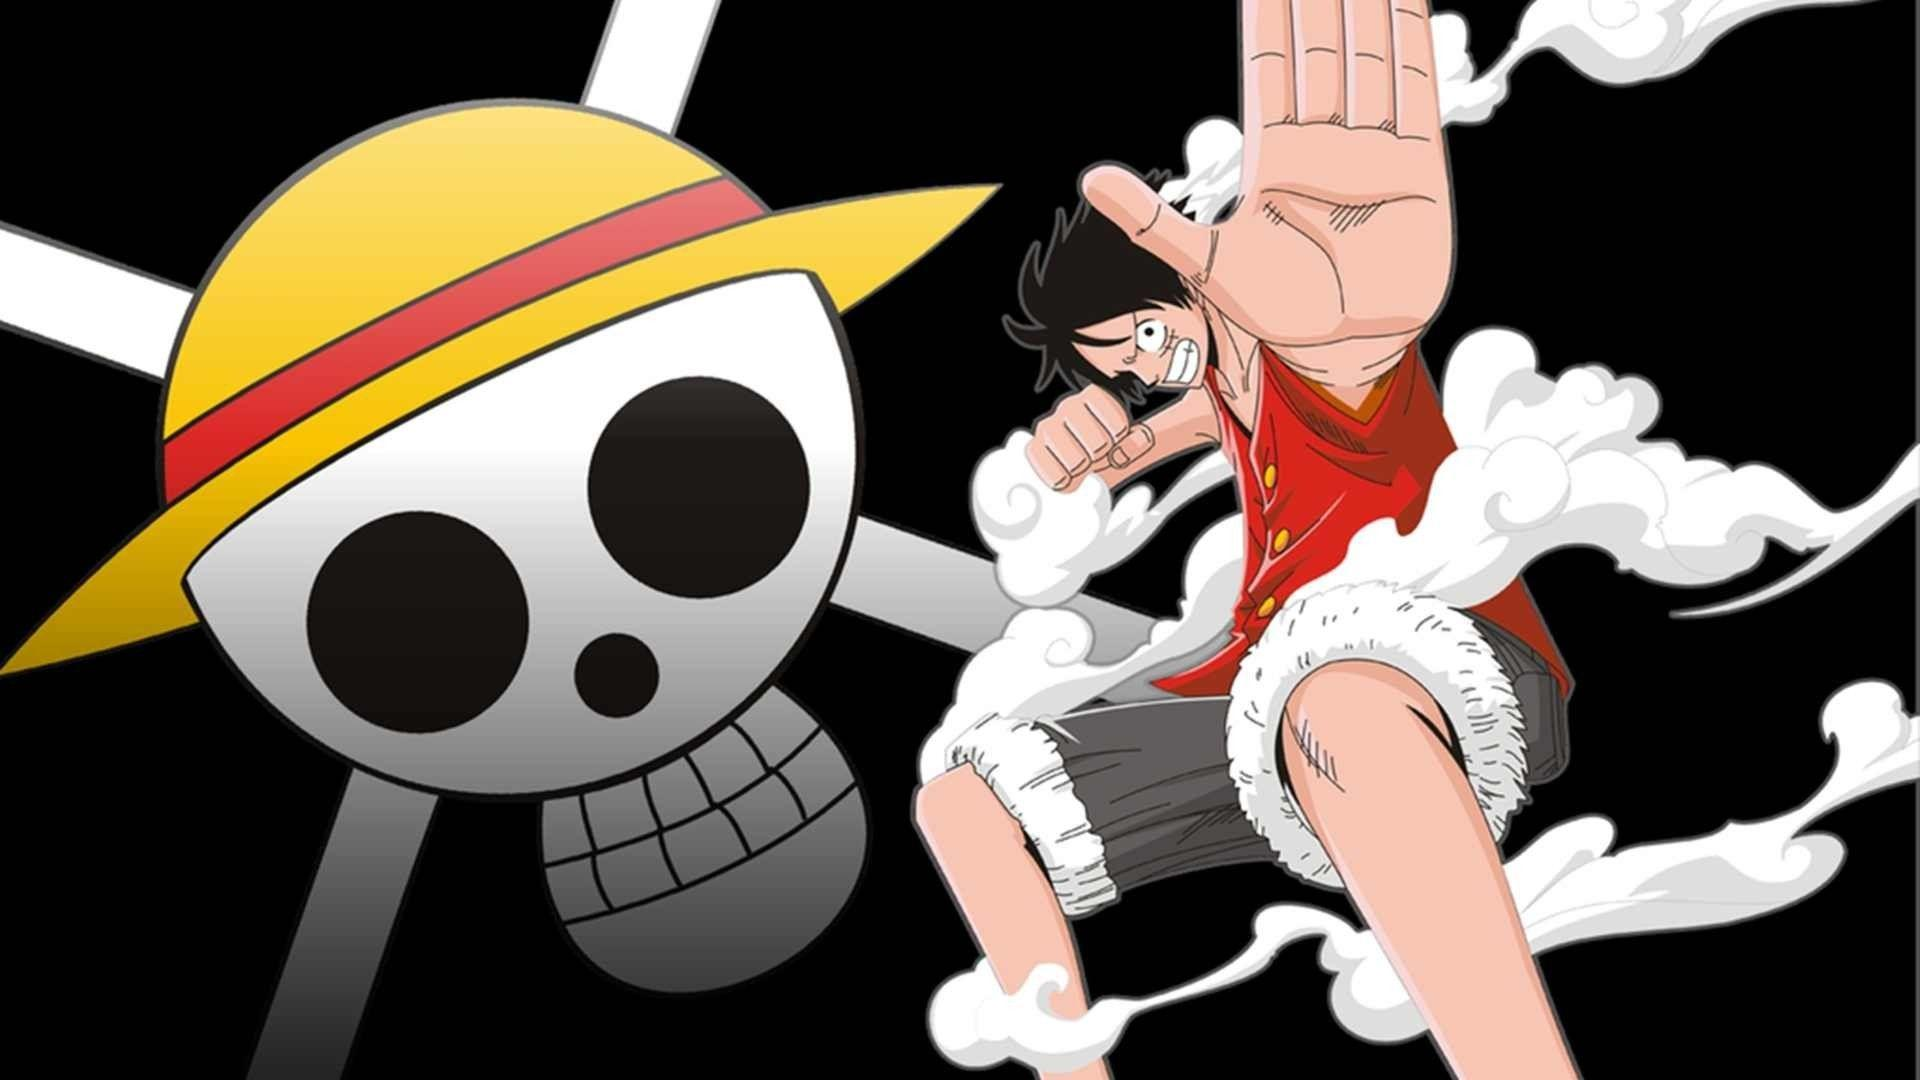 See the handpicked one piece jolly roger wallpaper images and share with your frends and social sites. One Piece New World Wallpapers - Wallpaper Cave